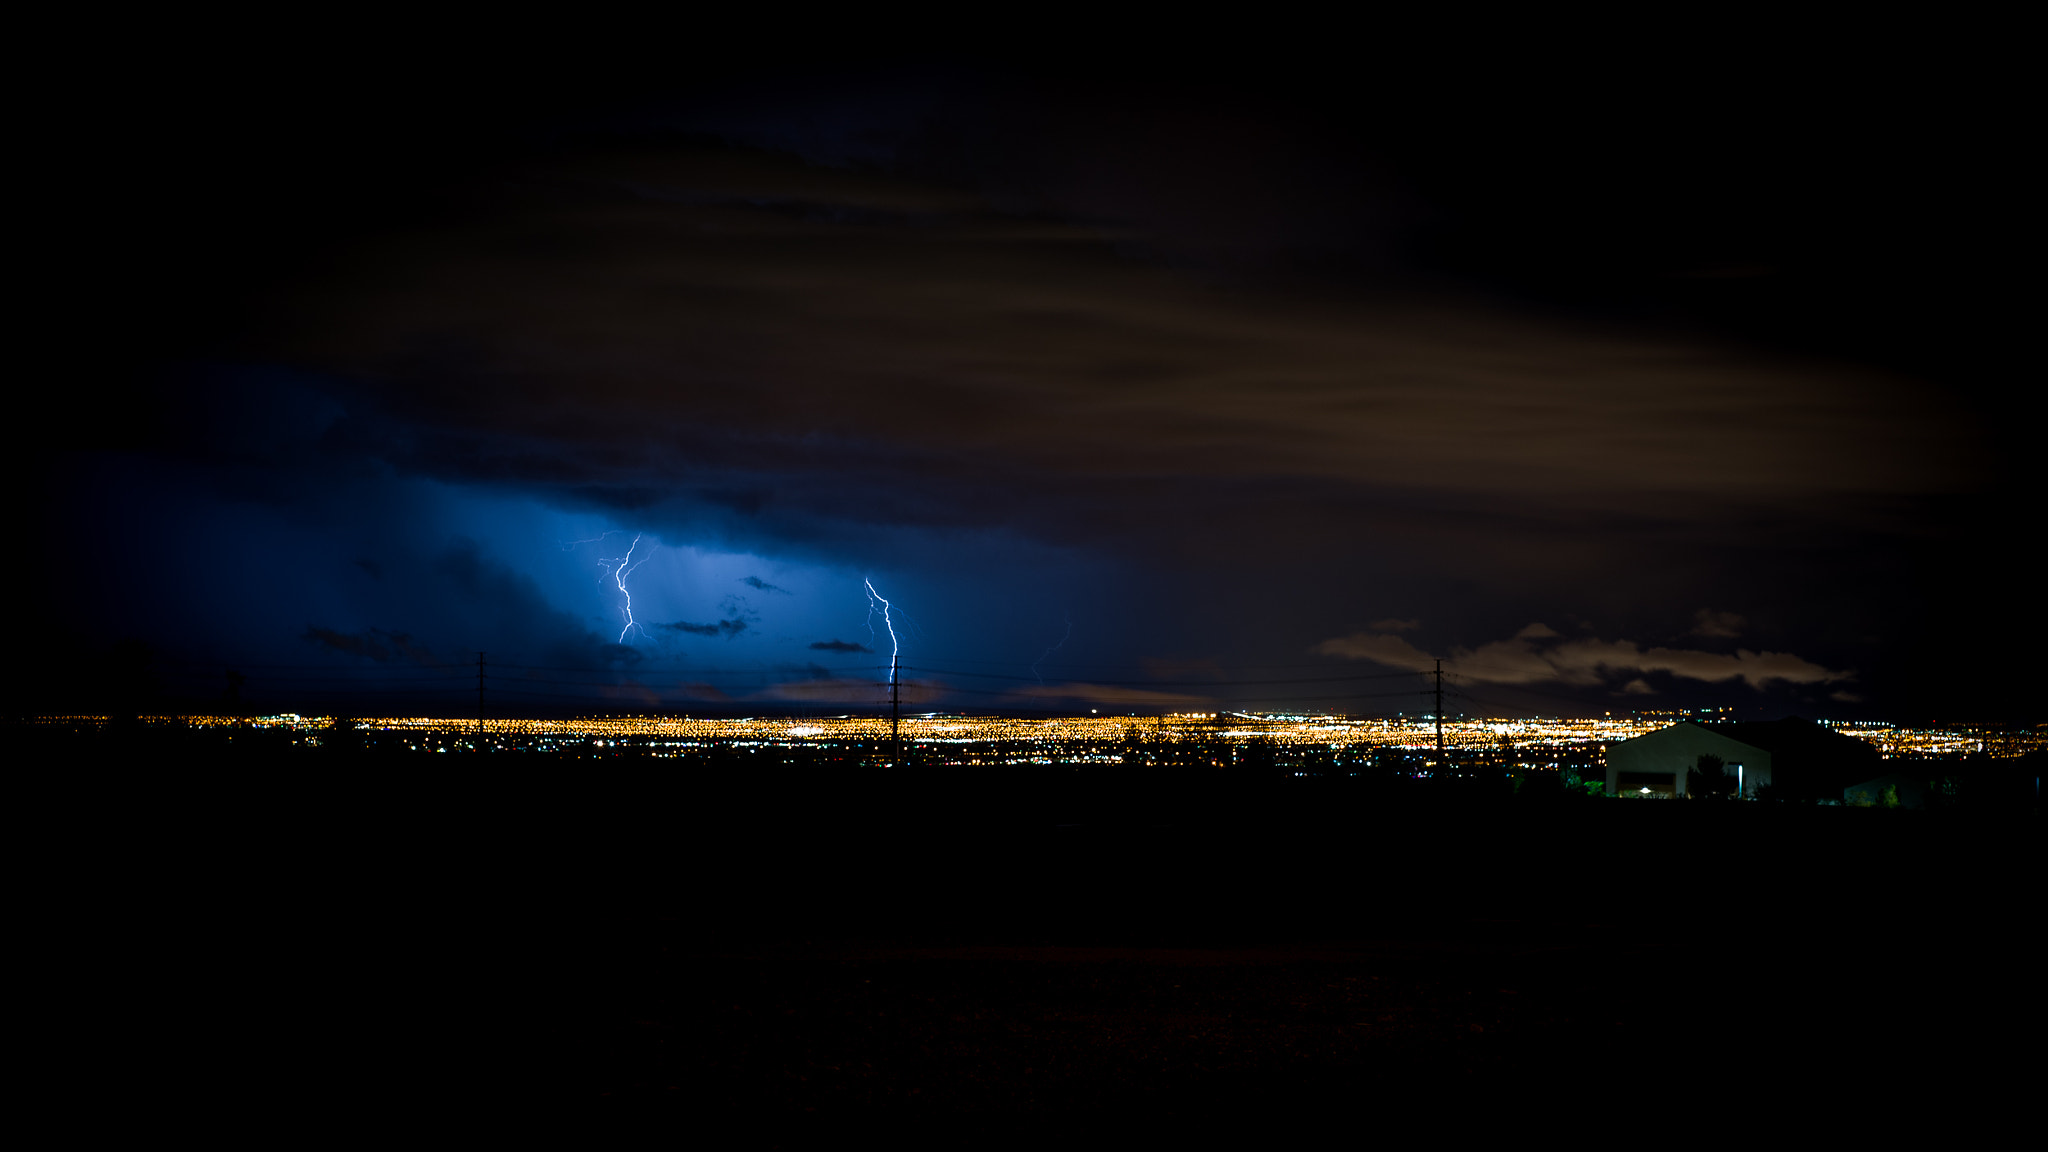 Photograph Las Vegas Lightning by Matthew Brown on 500px